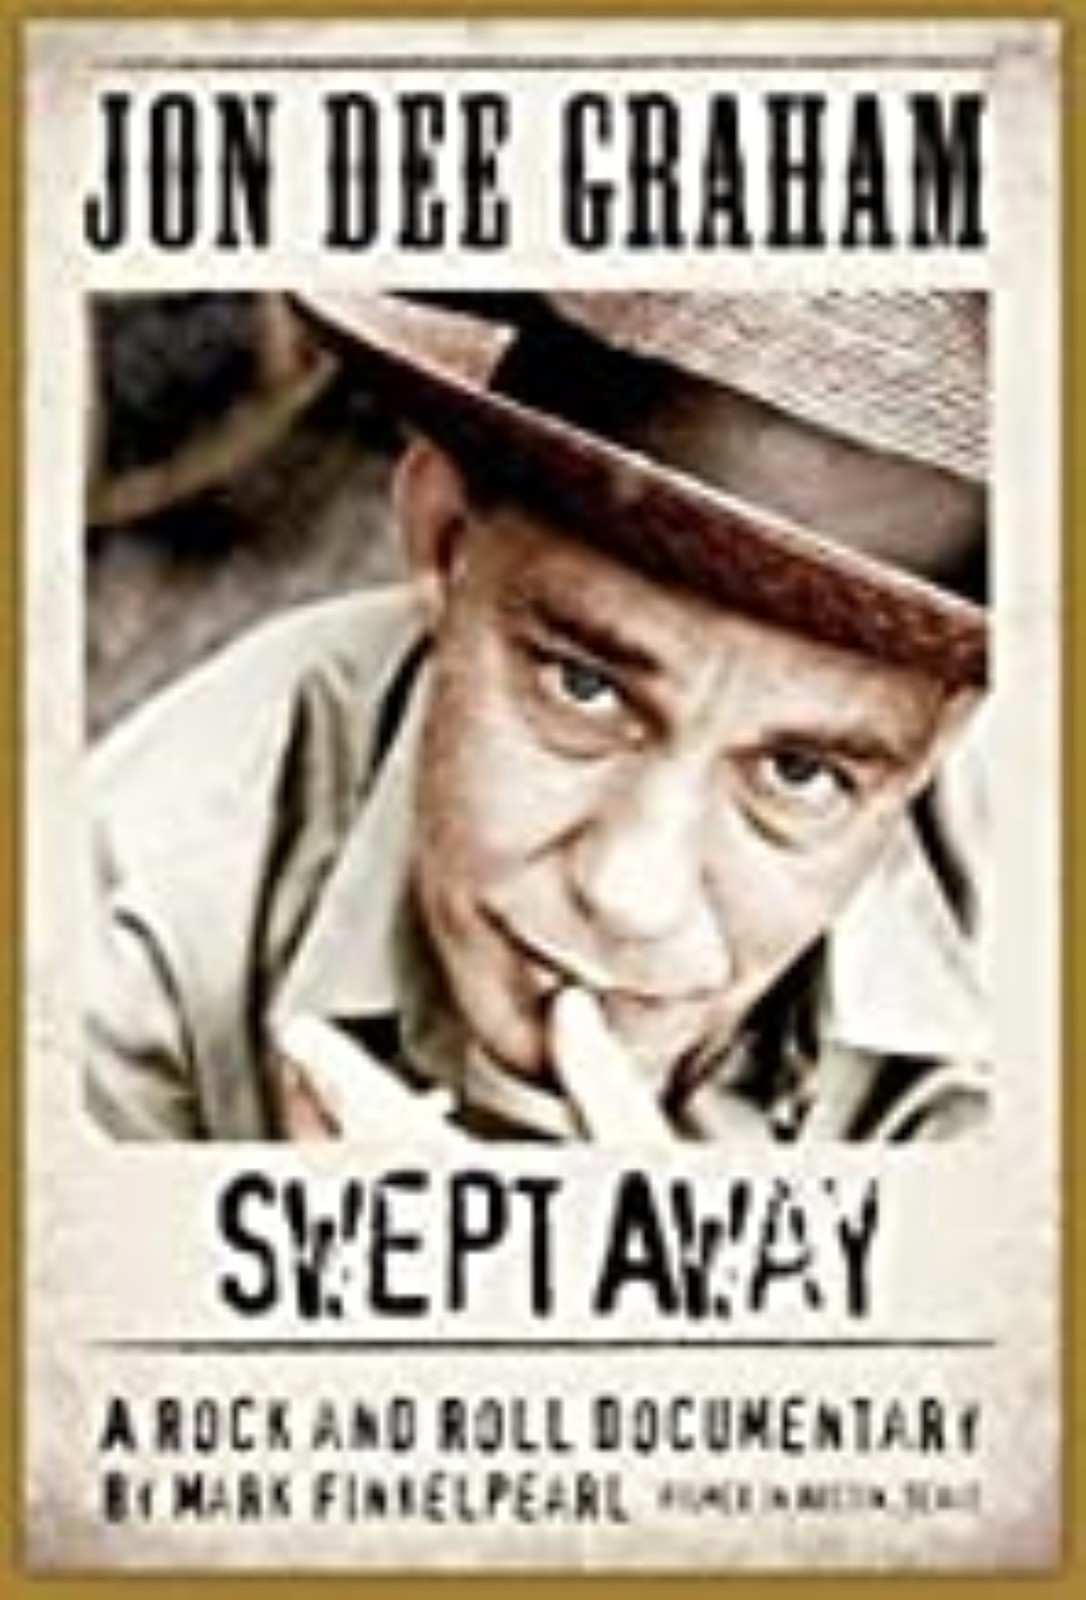 Jon Dee Graham: Swept Away, A Rock and Roll Documentary Dvd